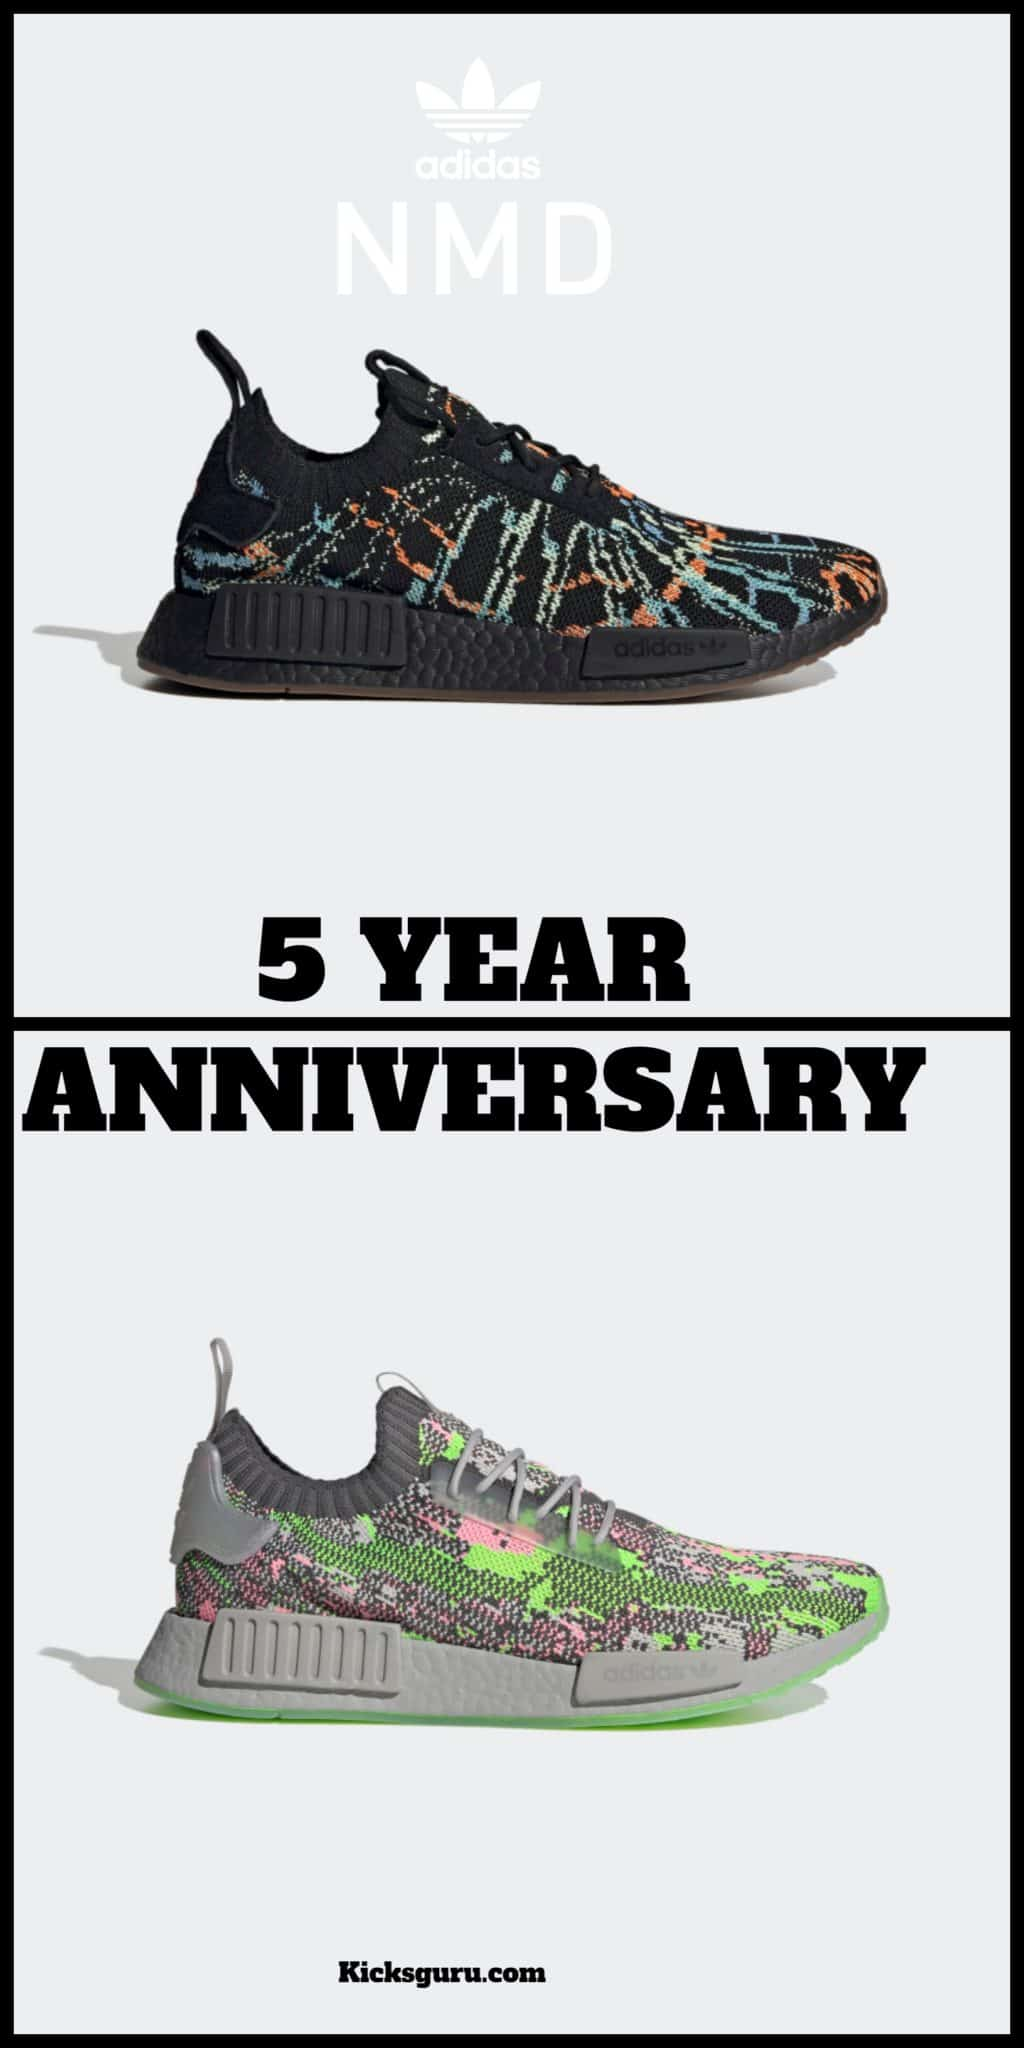 Adidas NMD turns 5 years old-2021